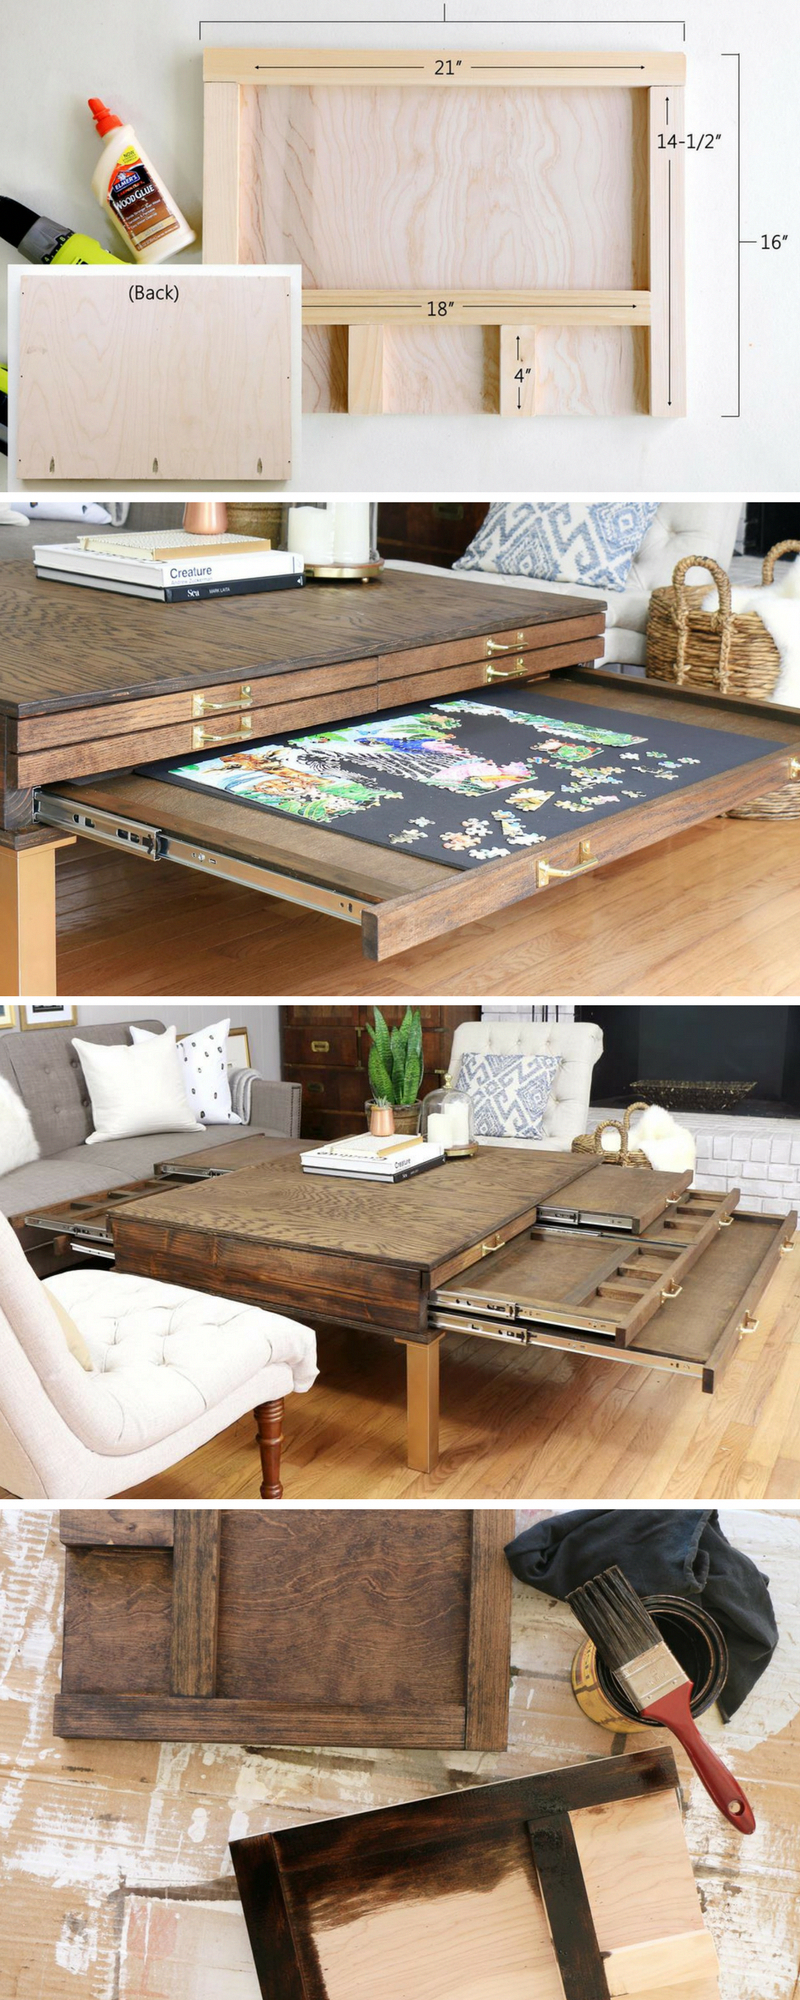 More Ideas Below Diy Wooden Coffee Table Square Crate Ideas Rustic Coffee Table With Small Storage Glas Diy Coffee Table Woodworking Projects Diy Puzzle Table